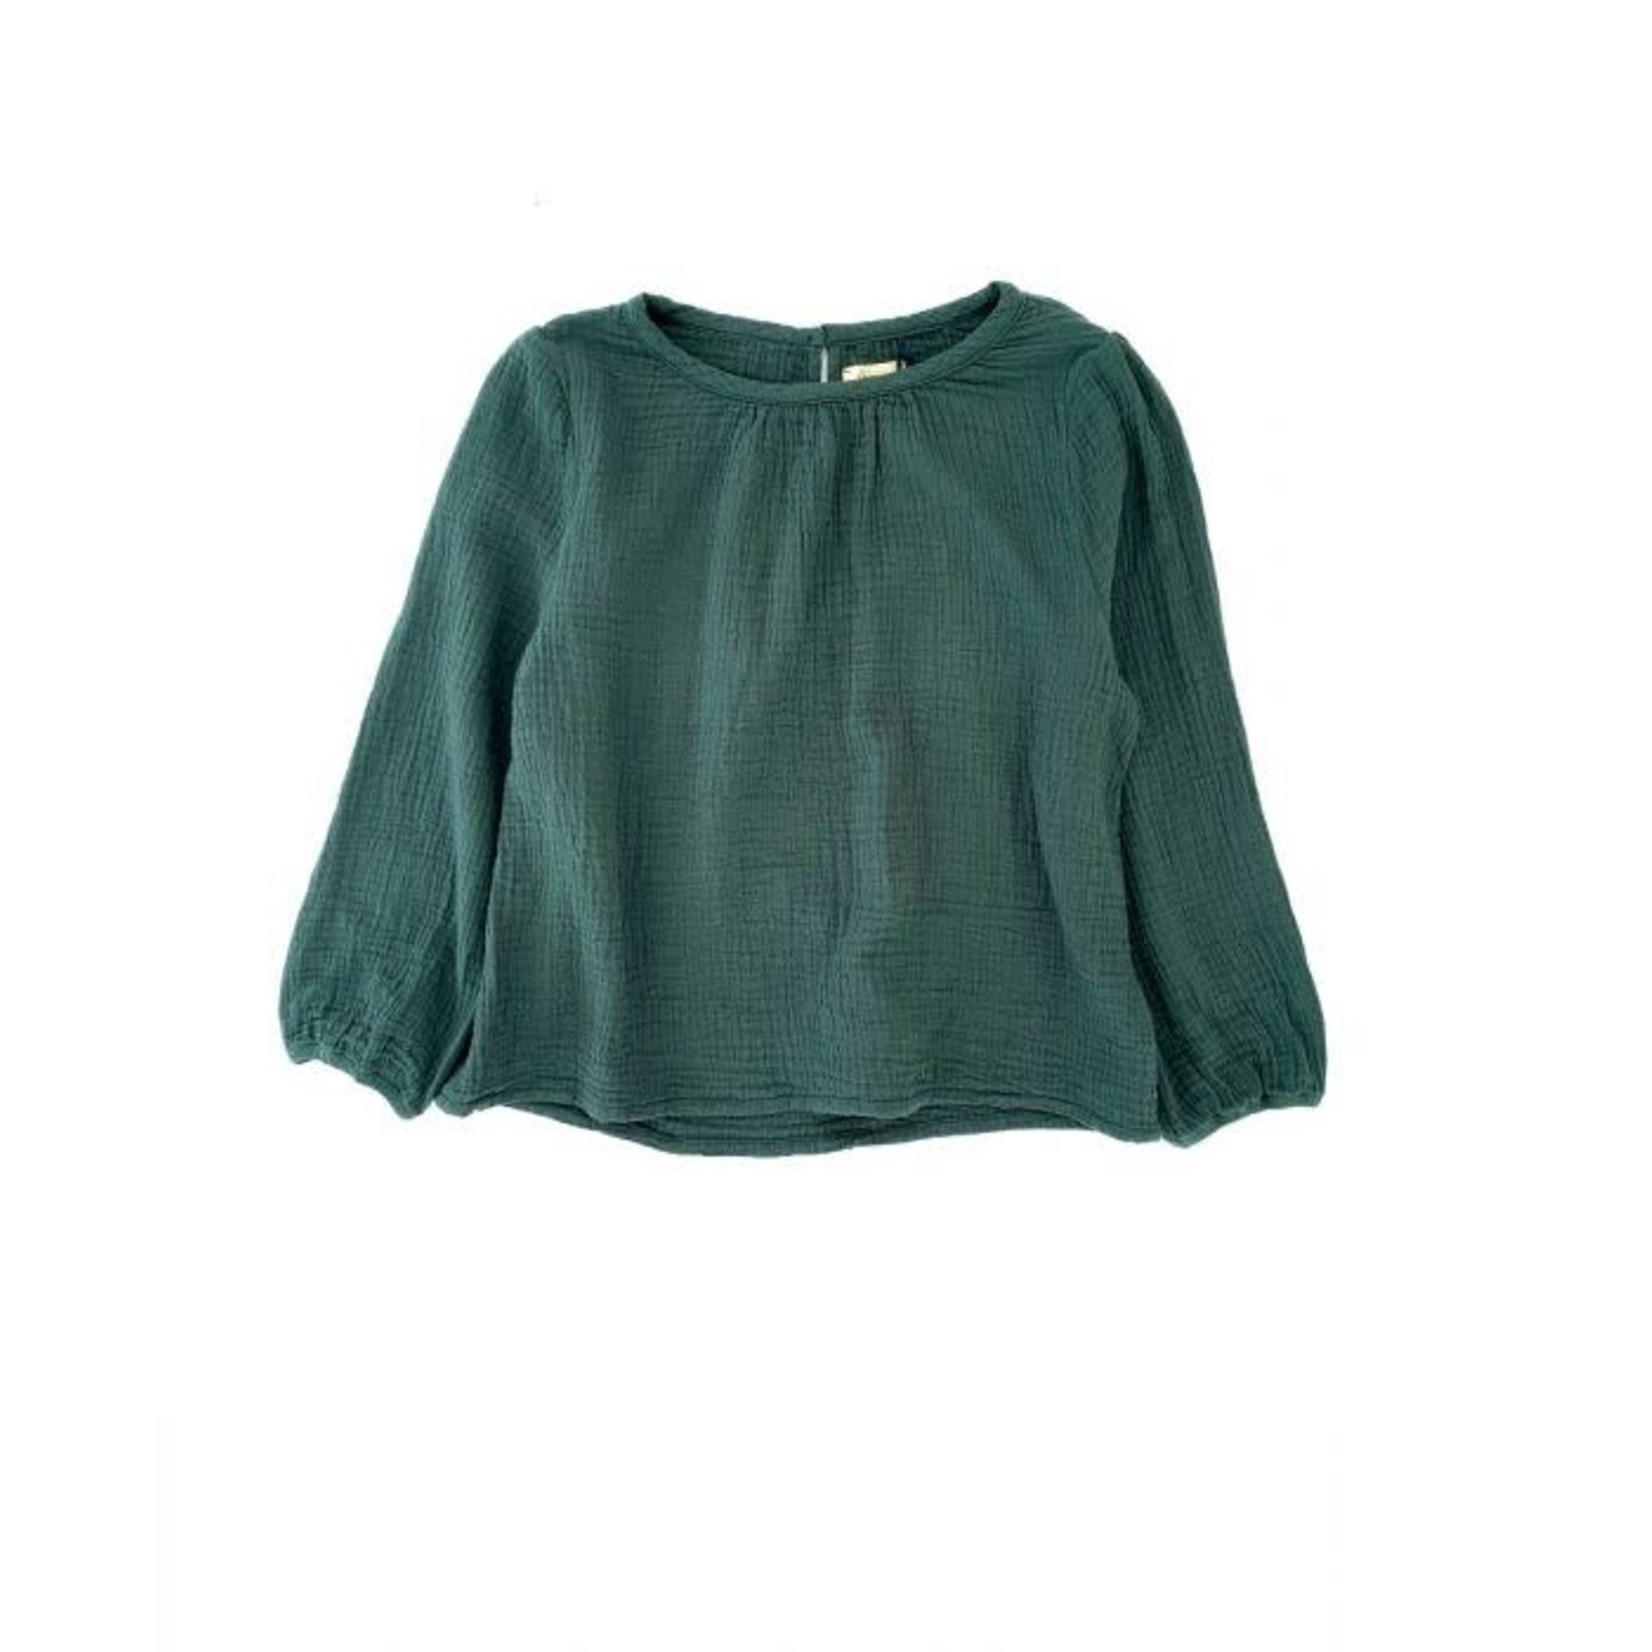 LONG LIVE THE QUEEN LONGLIVETHEQUEEN crinkle blouse dark